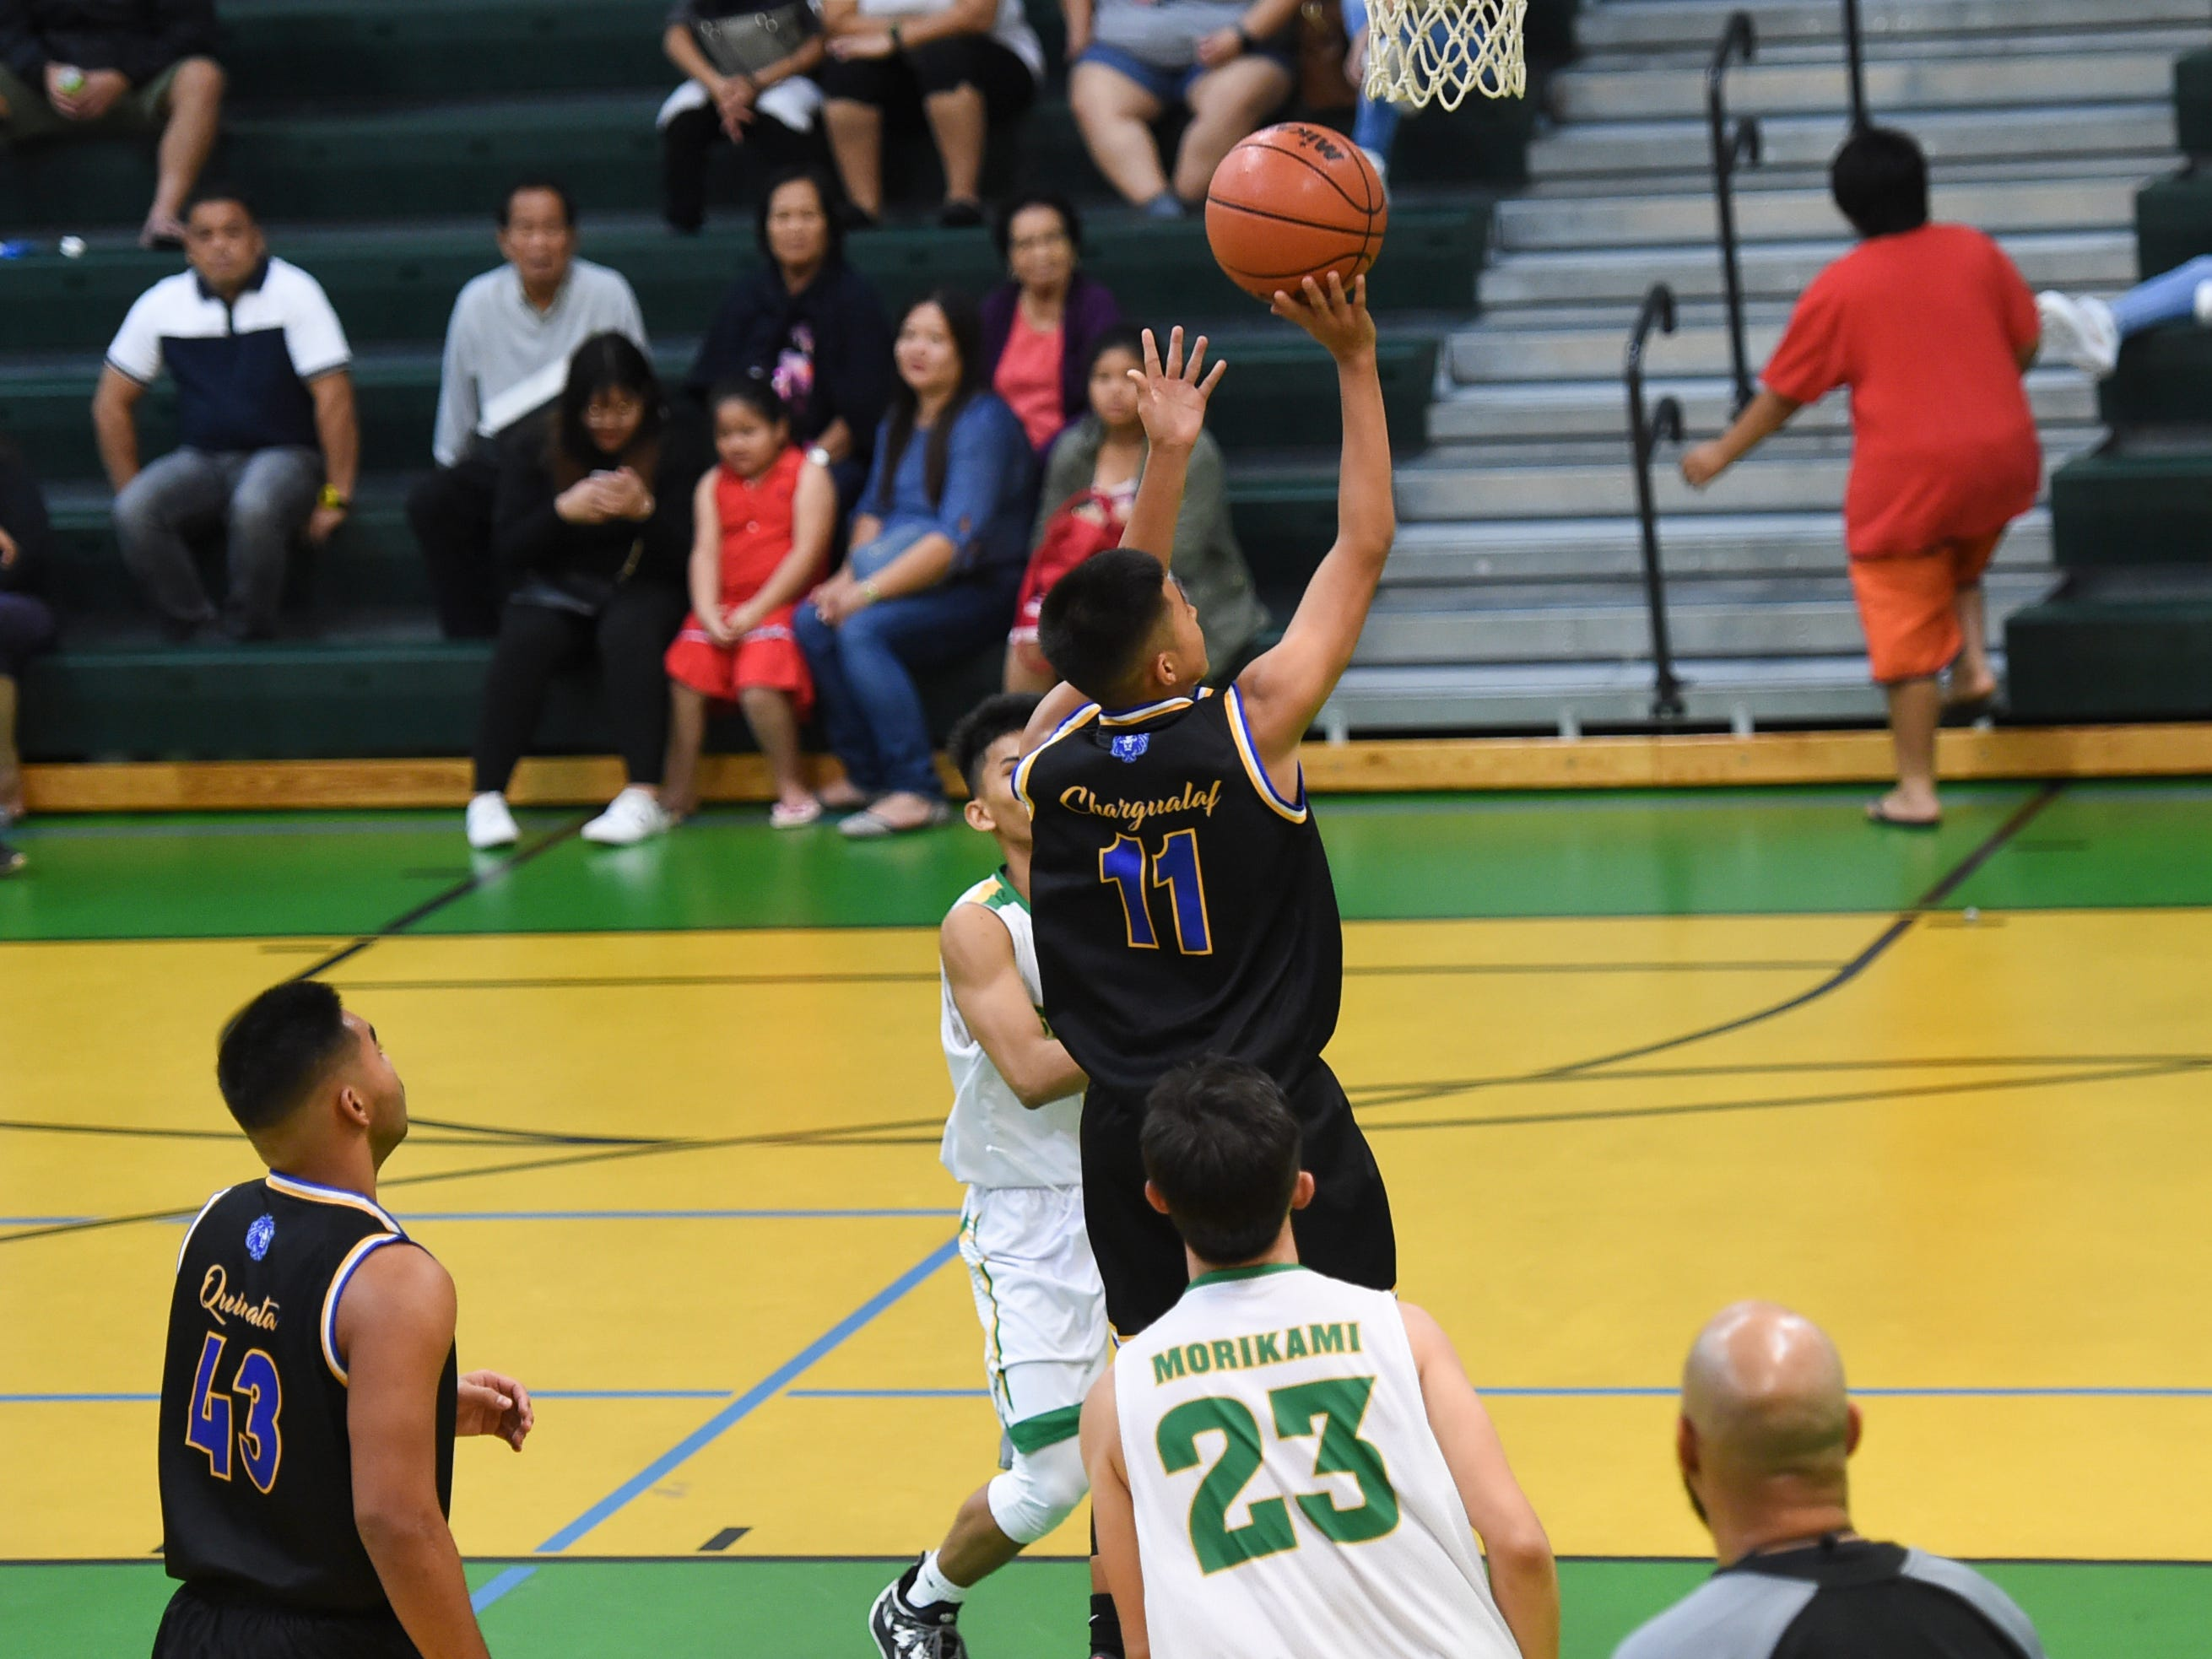 Bryce Chargualaf (11) scores on a layup for the Notre Dame Royals during an Independent Interscholastic Athletic Association of Guam Boys' Basketball game at the John F. Kennedy High School Gym, Feb. 2, 2019.